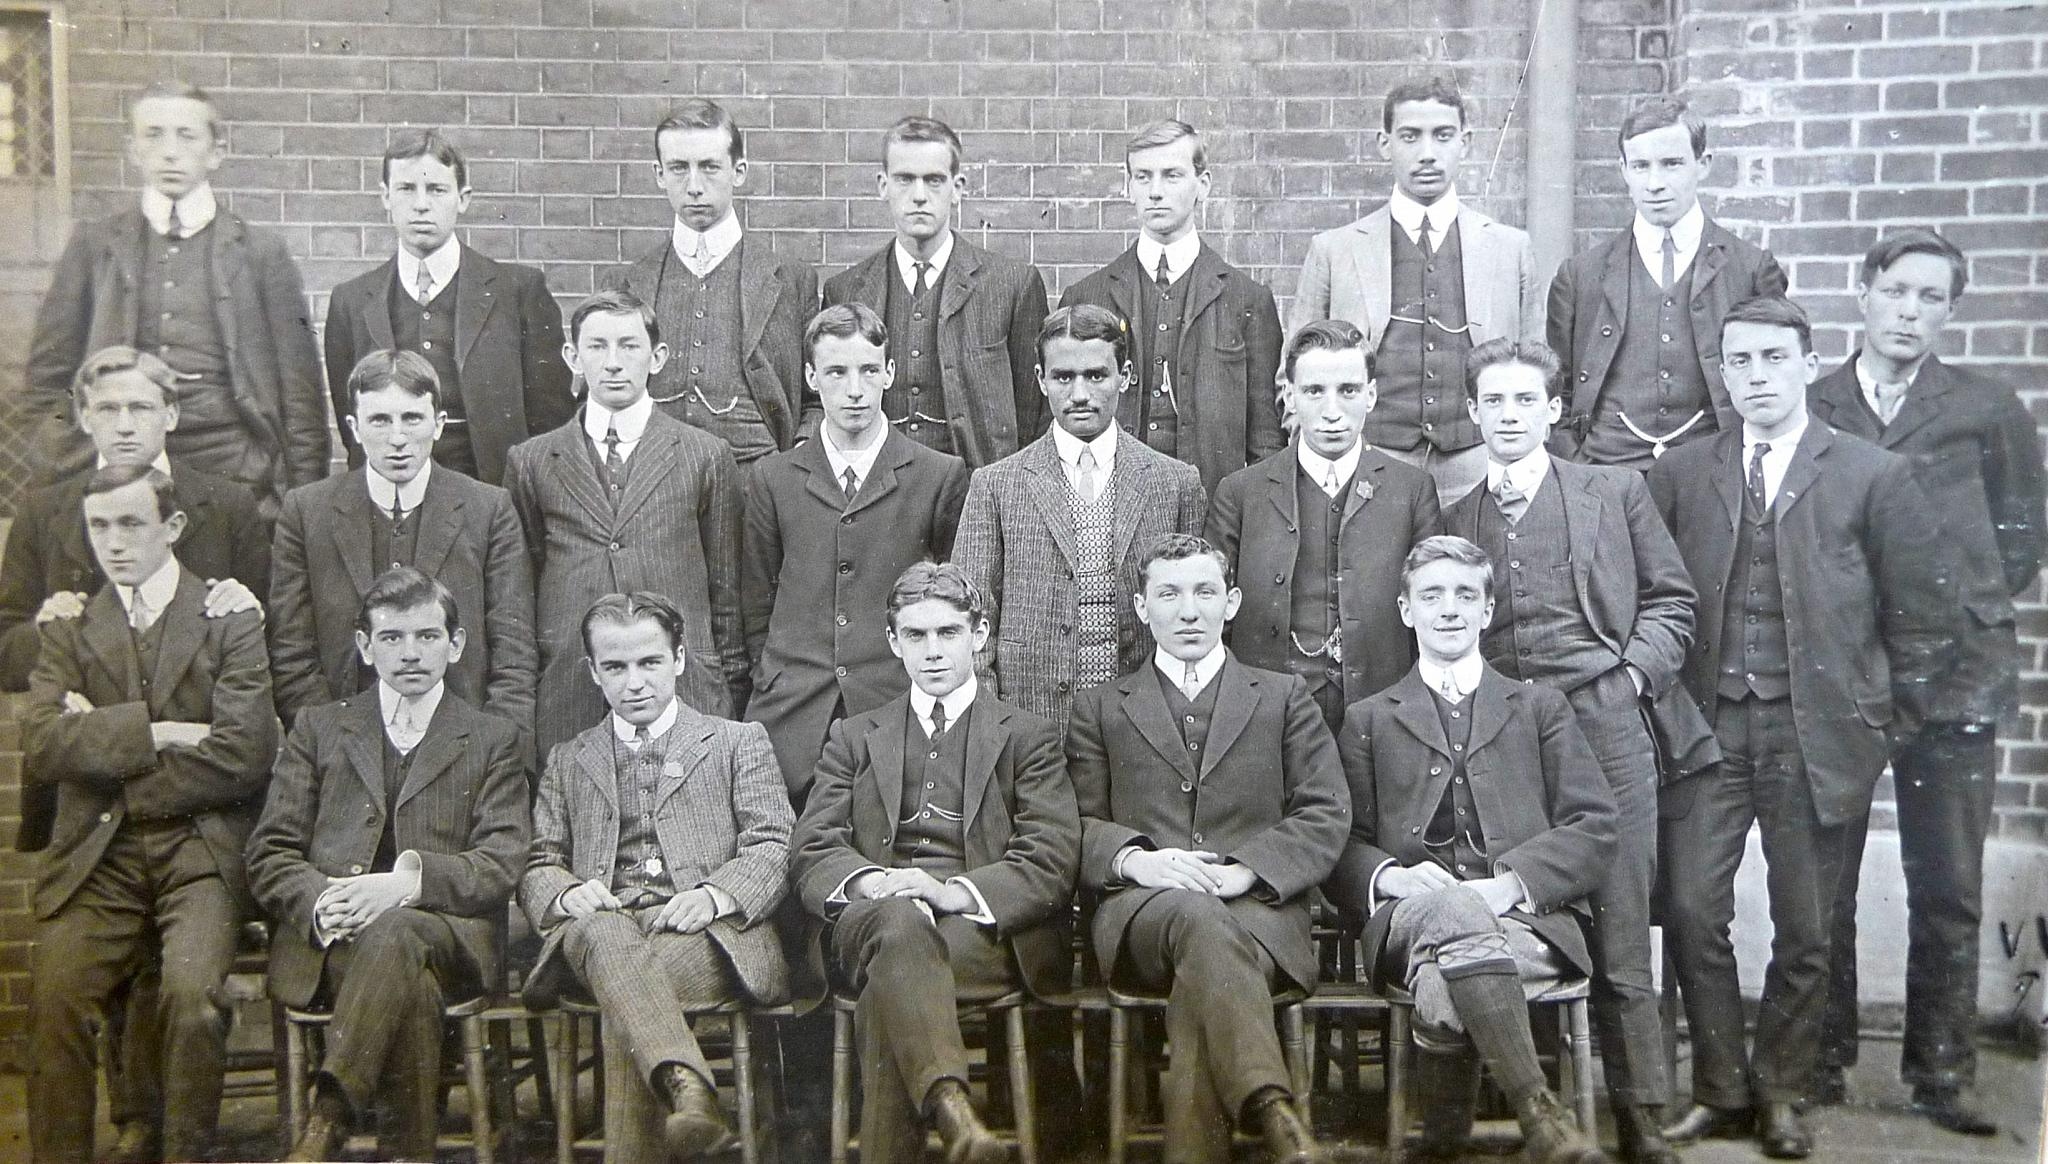 Trainee teachers at Goldsmiths in the early 1900s